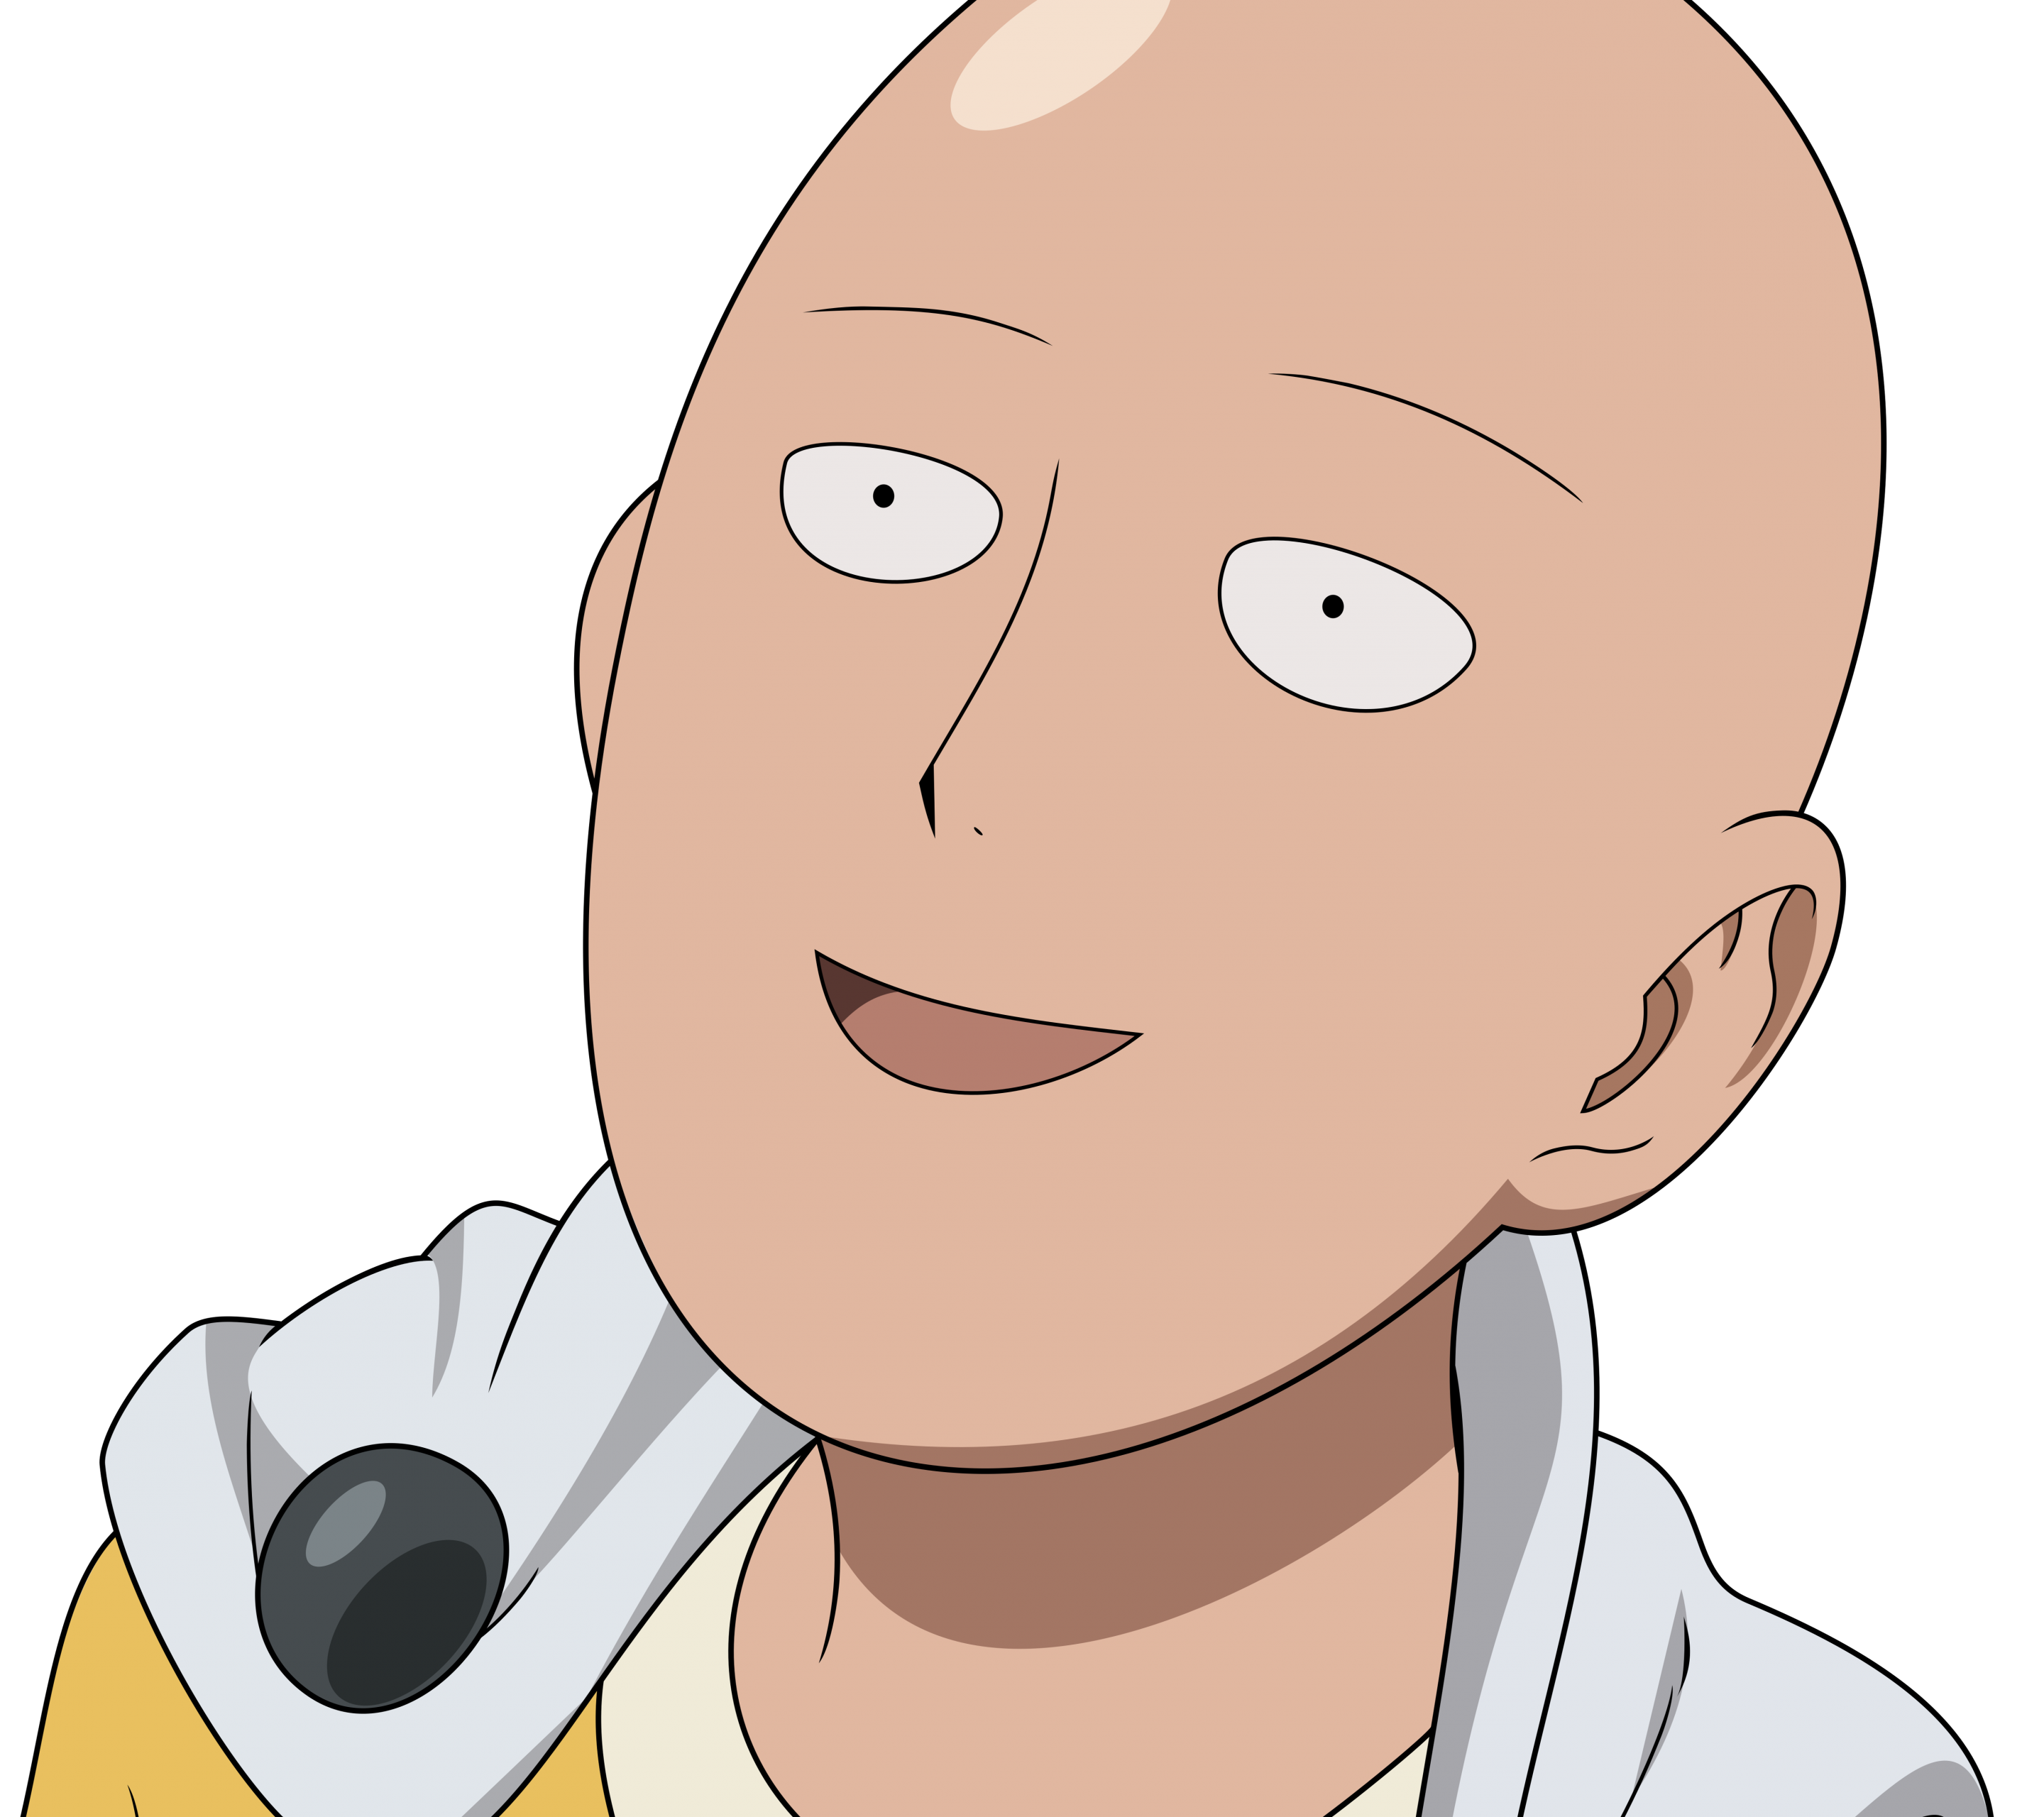 Anime One Punch Man Png - Anime/One-Punch Man (2880x2560) Wallpaper ID: 589875 - Mobile Abyss